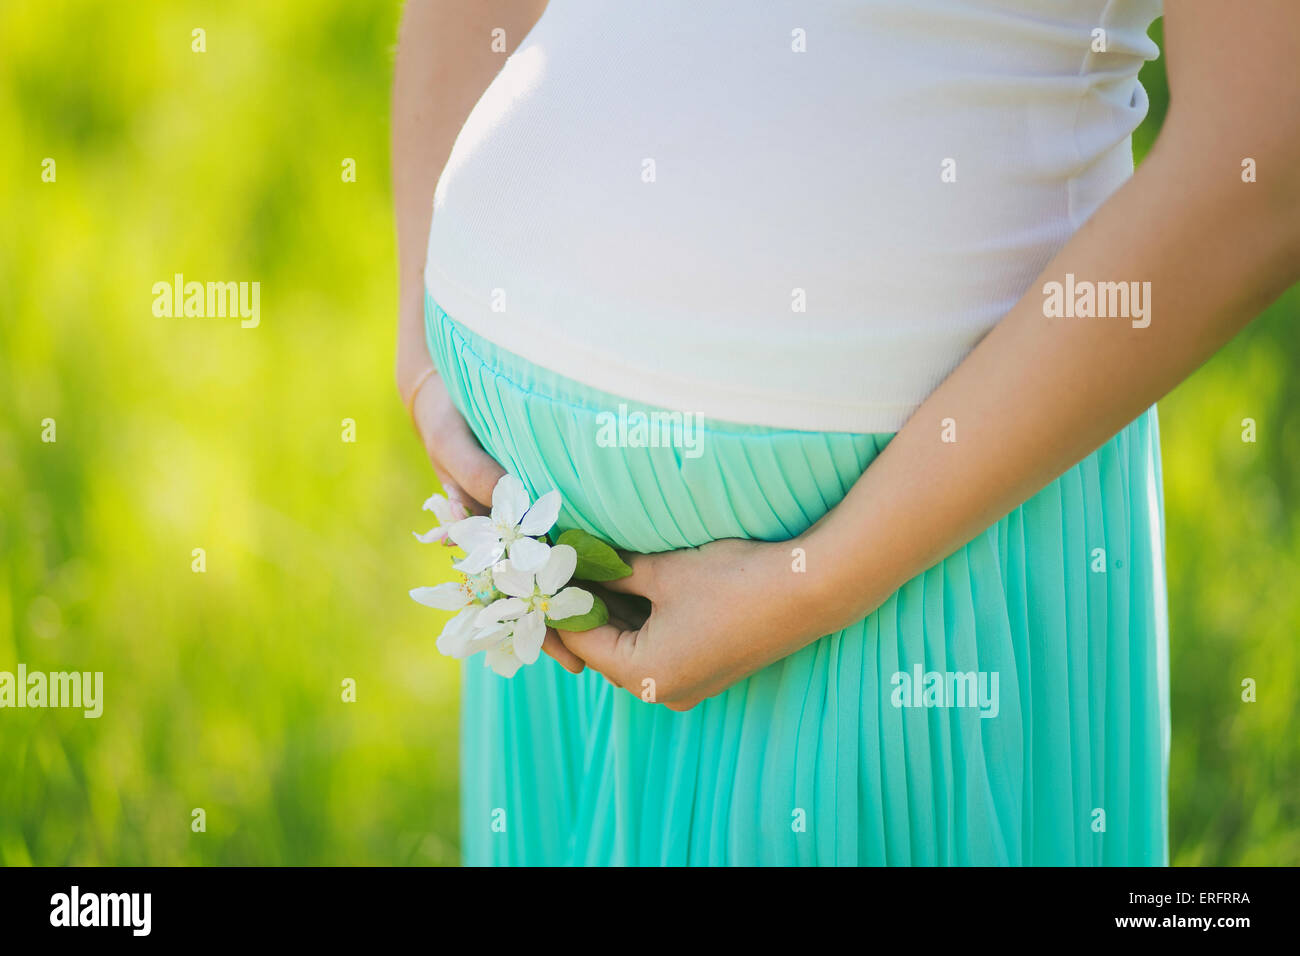 Young expectant mother. Close up of female hands holding pregnant belly. Unrecognizable person. - Stock Image